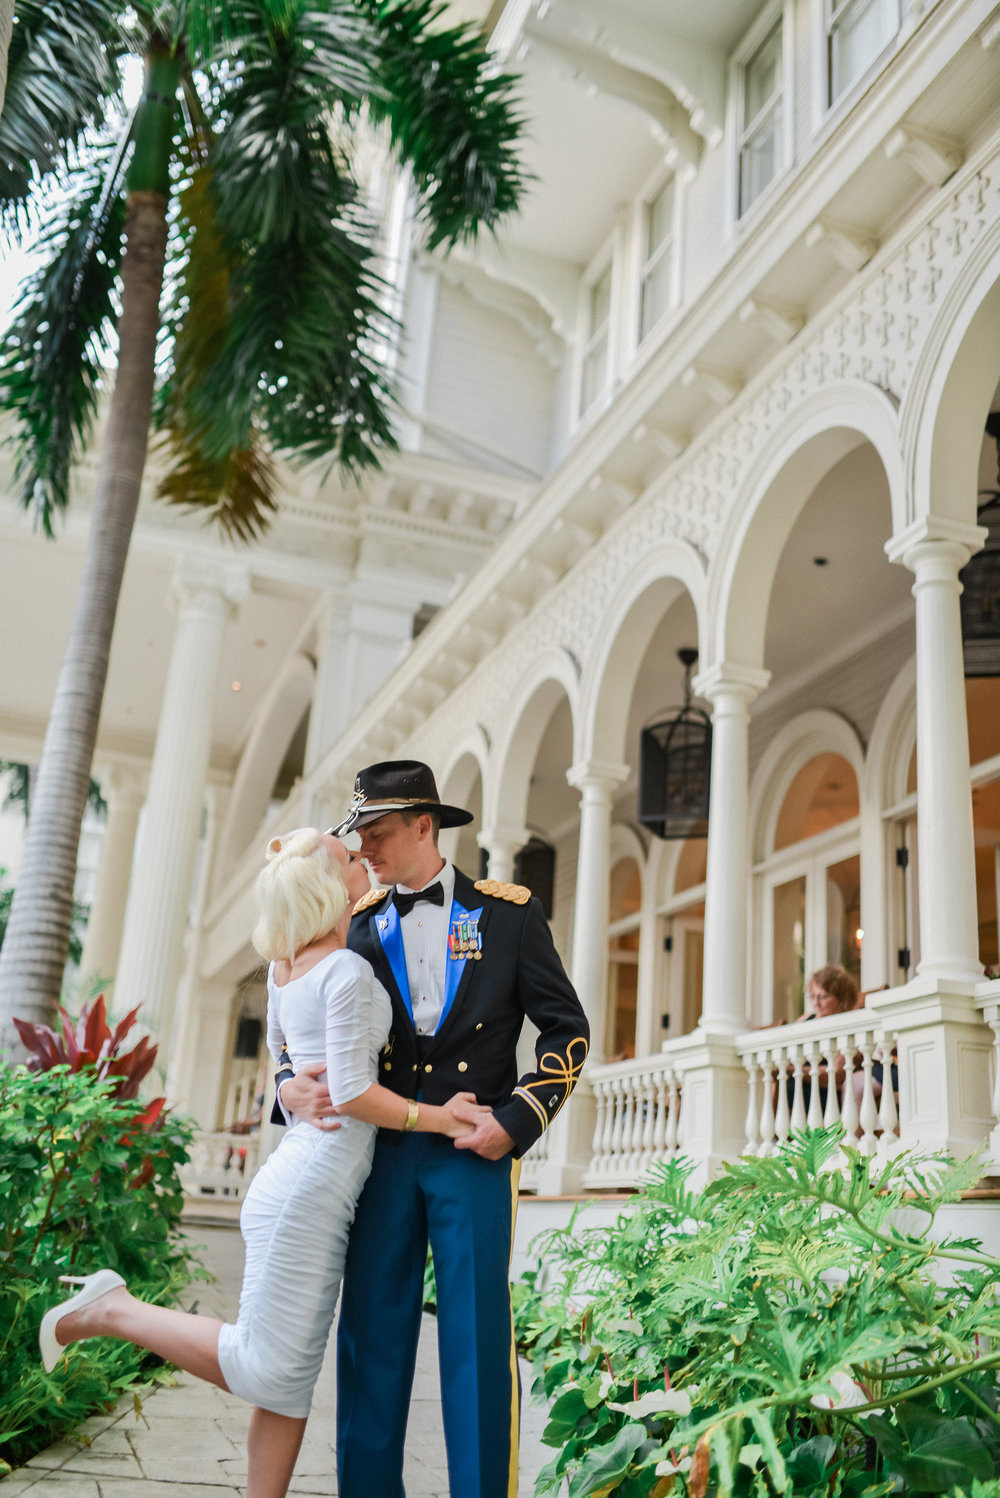 moana surfrider hotel wedding oahu hawaii stephen ludwig photography (33).jpg